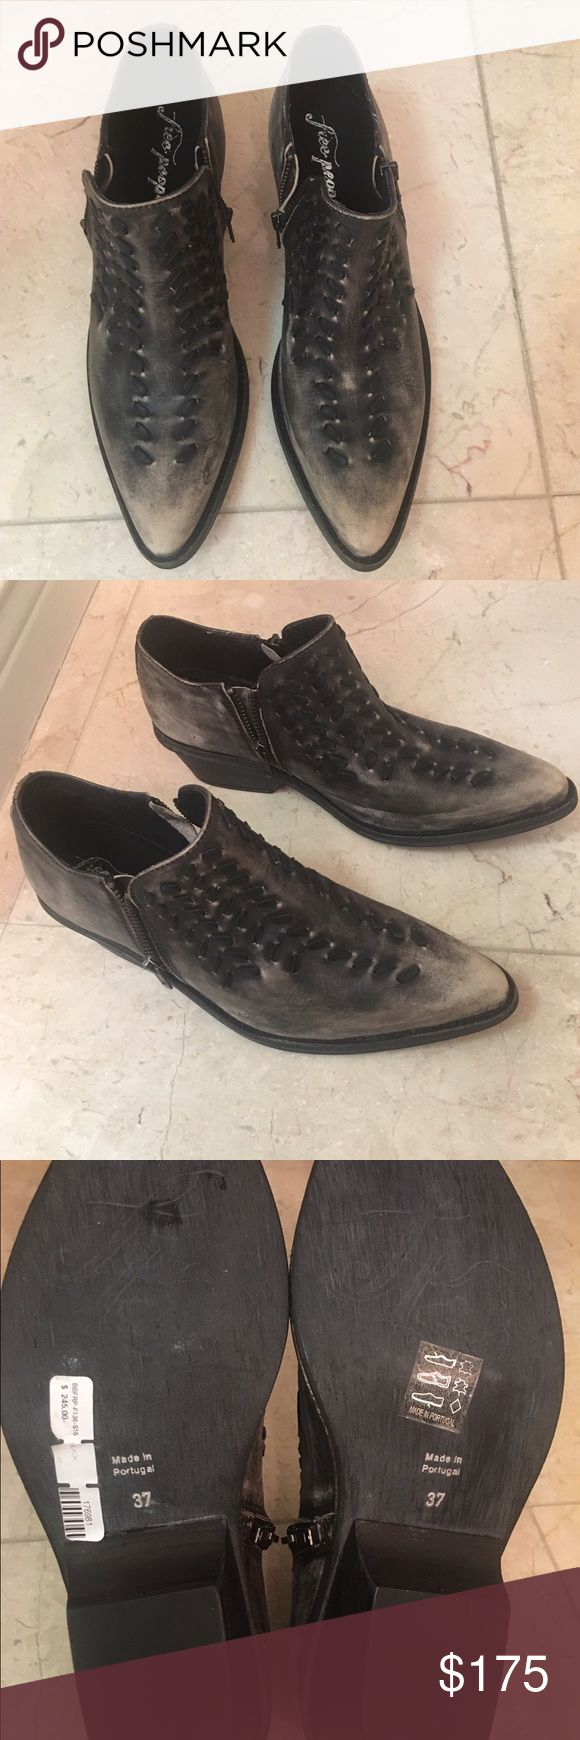 Free People Boots Brand New Free People Boots! Offers welcome 🤗 Free People Shoes Ankle Boots & Booties